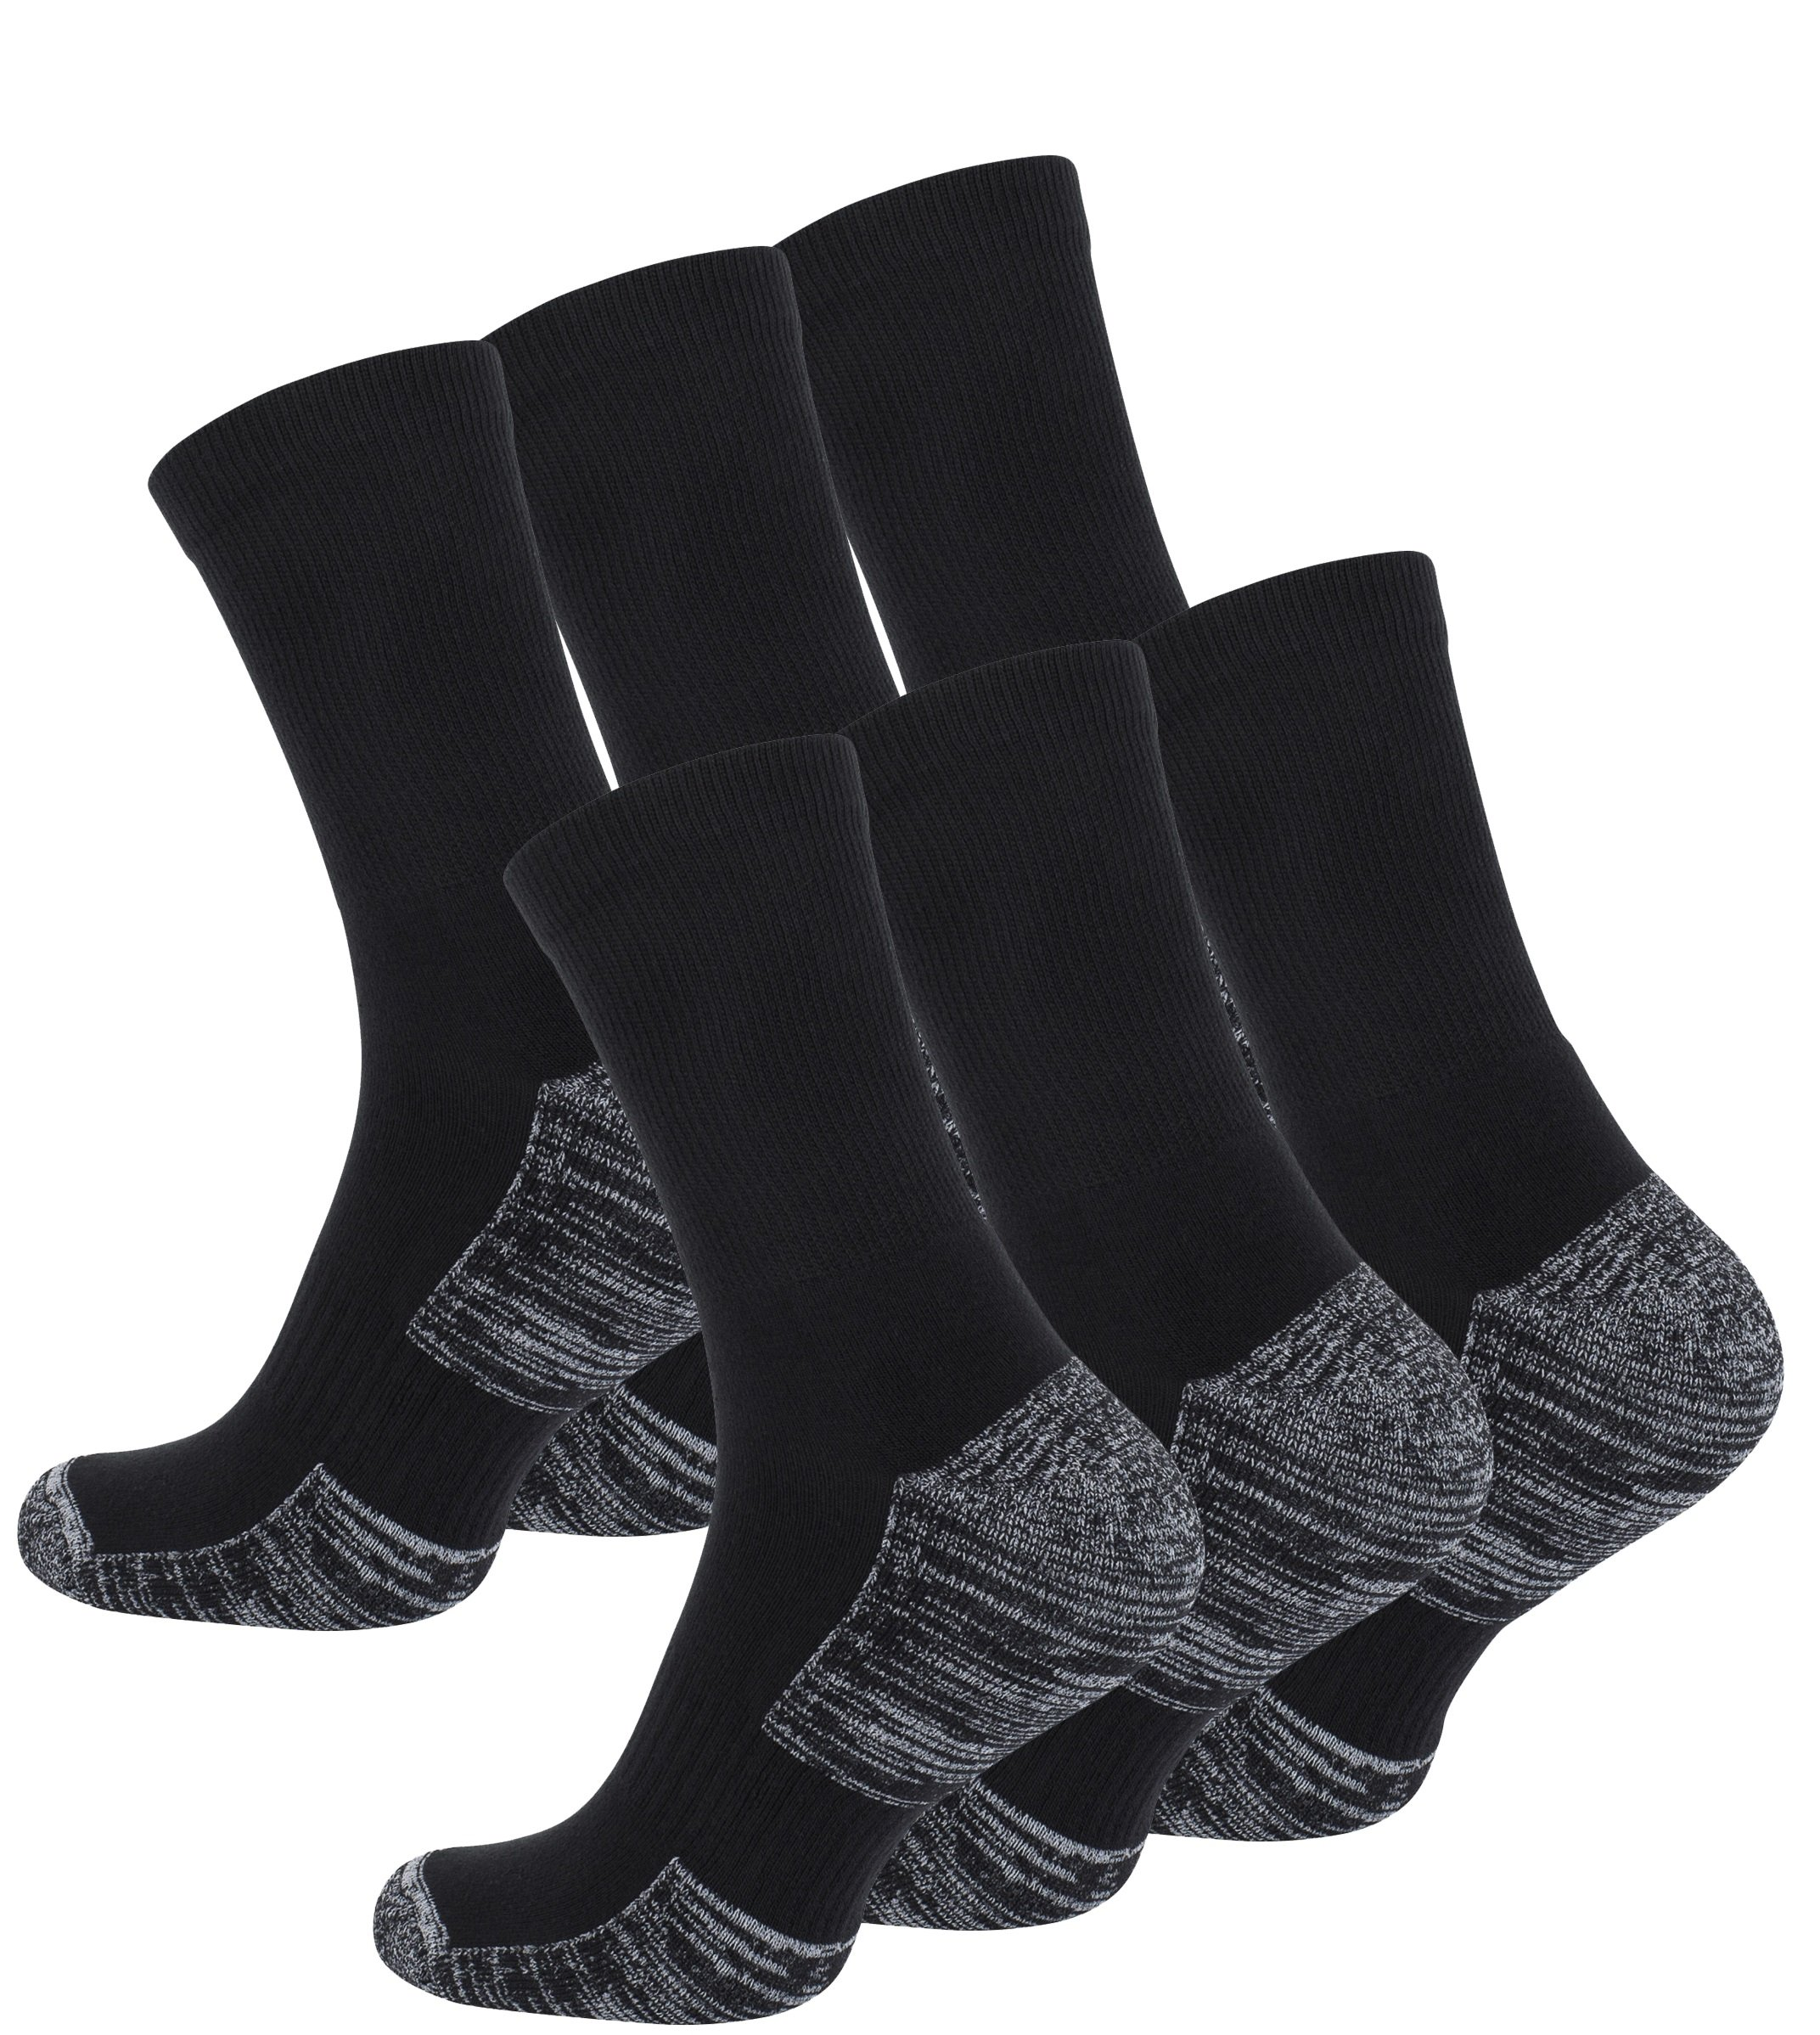 91G3kVHU3QL - 6 Pairs of Hiking & Trekking Socks, Outdoor Socks, with Terry Sole, UNISEX